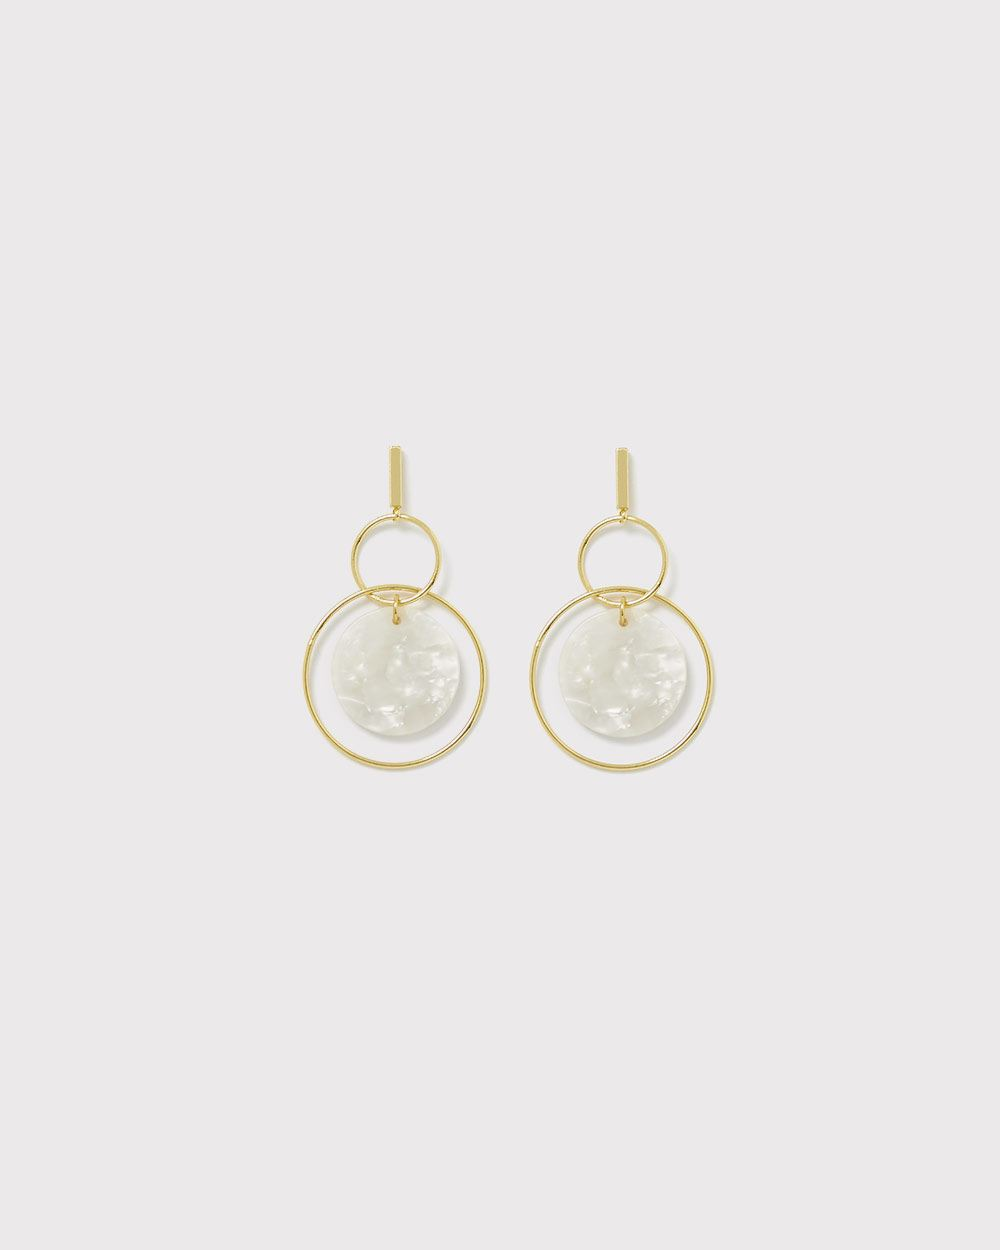 Pearly disc earrings